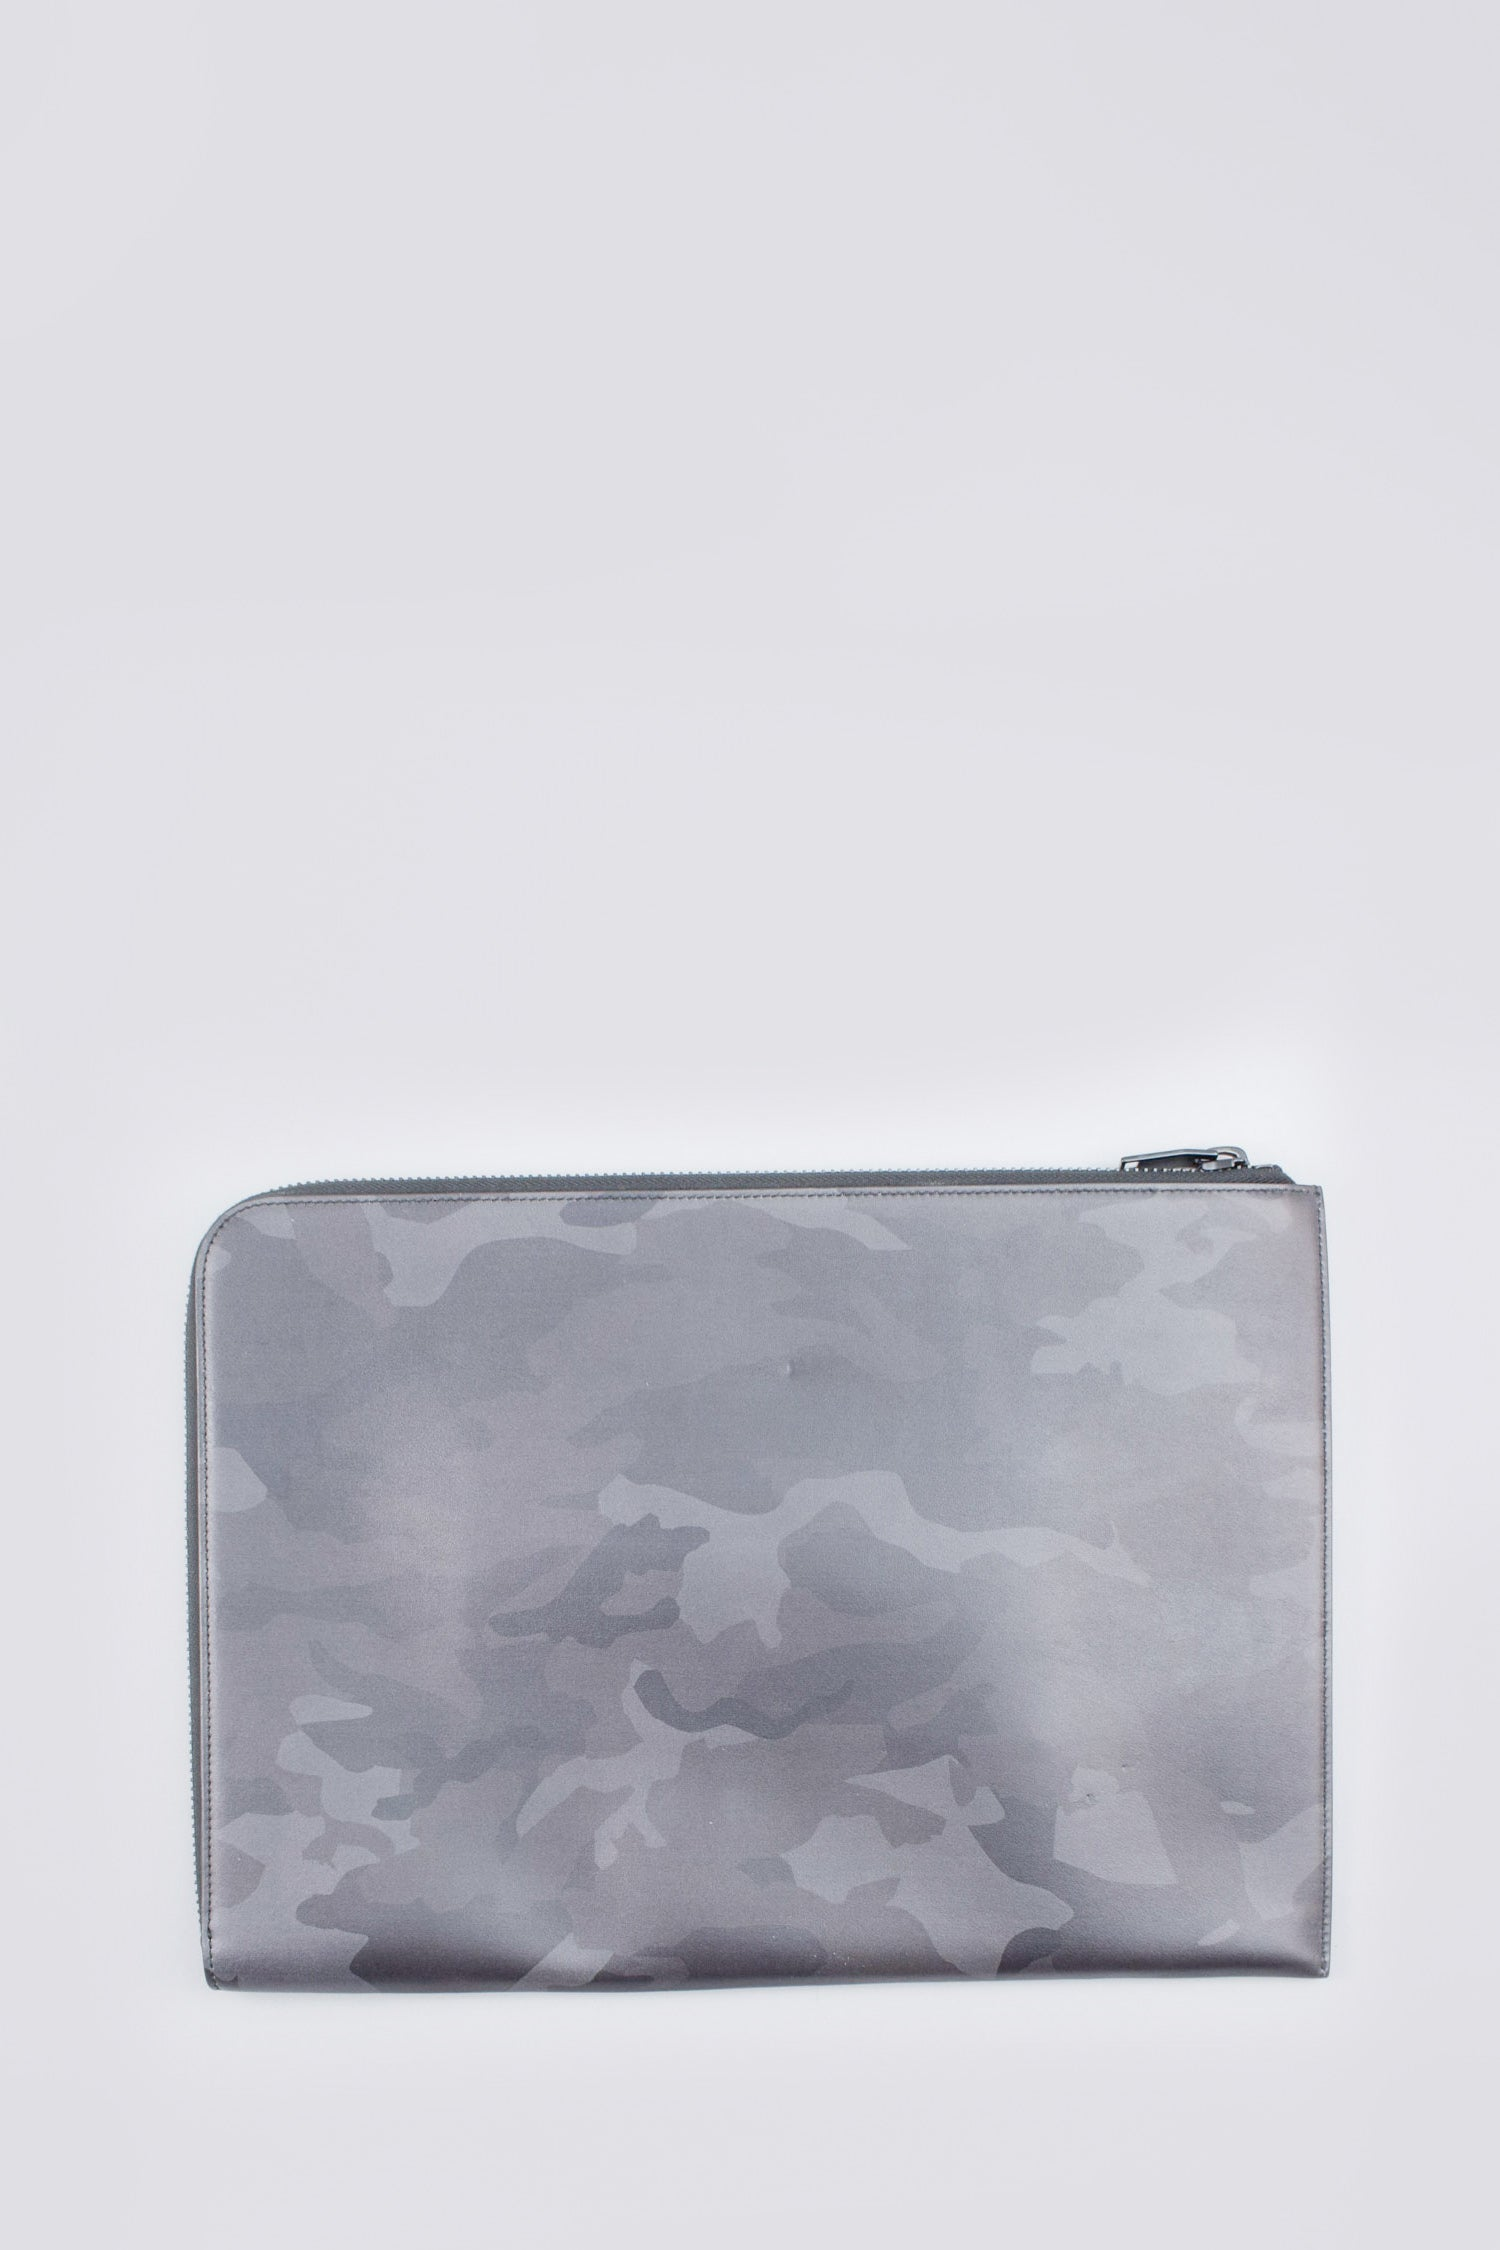 Saint Laurent Black/Grey Camouflage Rider Organizer